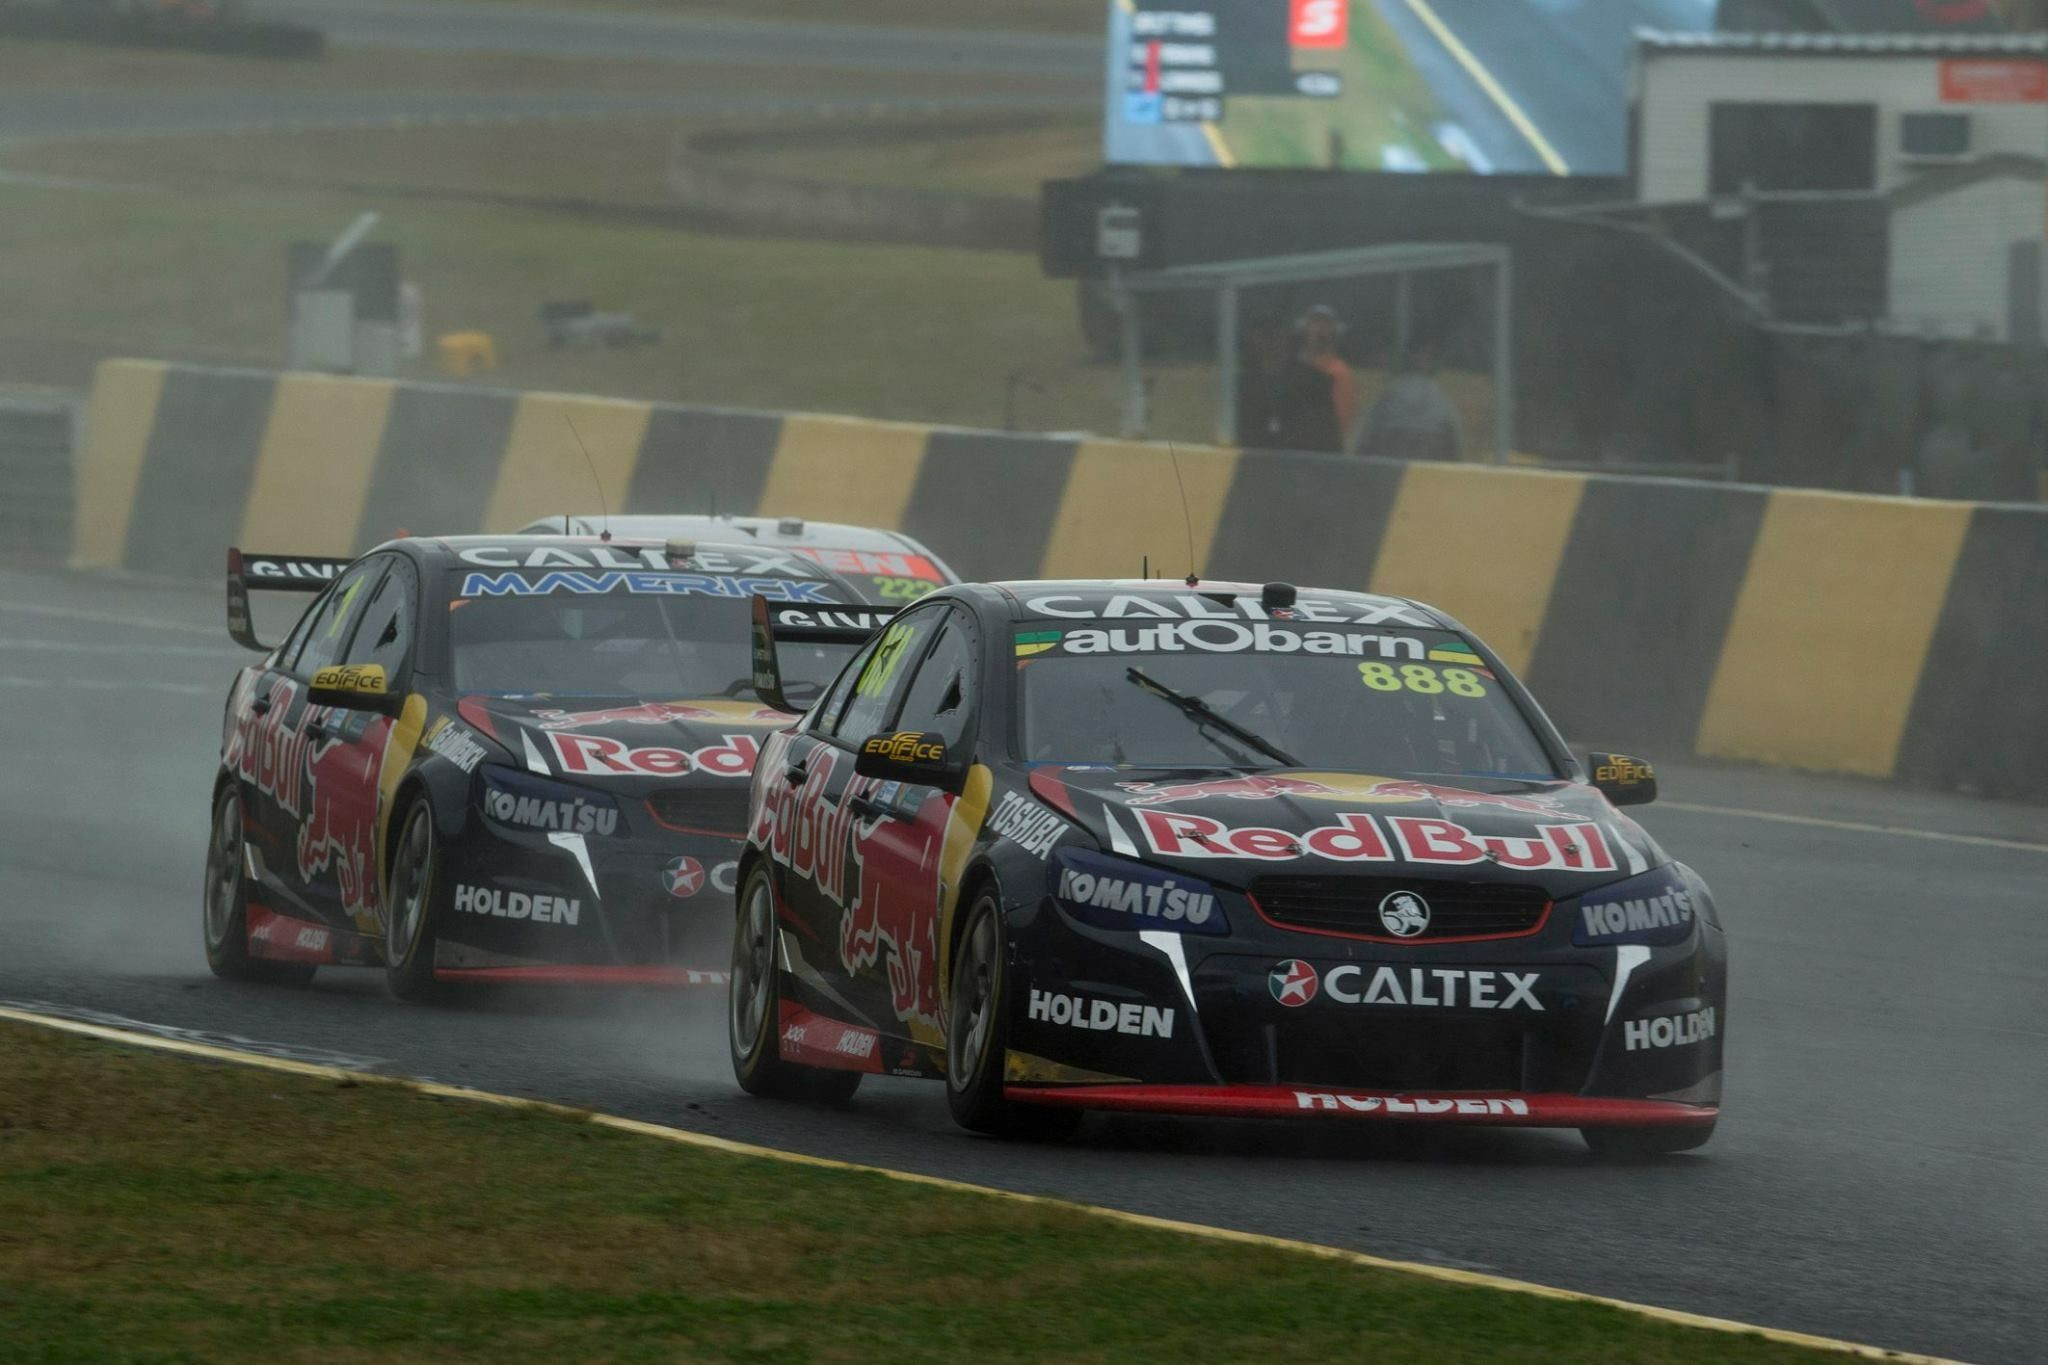 Pin By Jesse James Johnson On Red Bull Racing Australia With Images Red Bull Racing Racing V8 Supercars